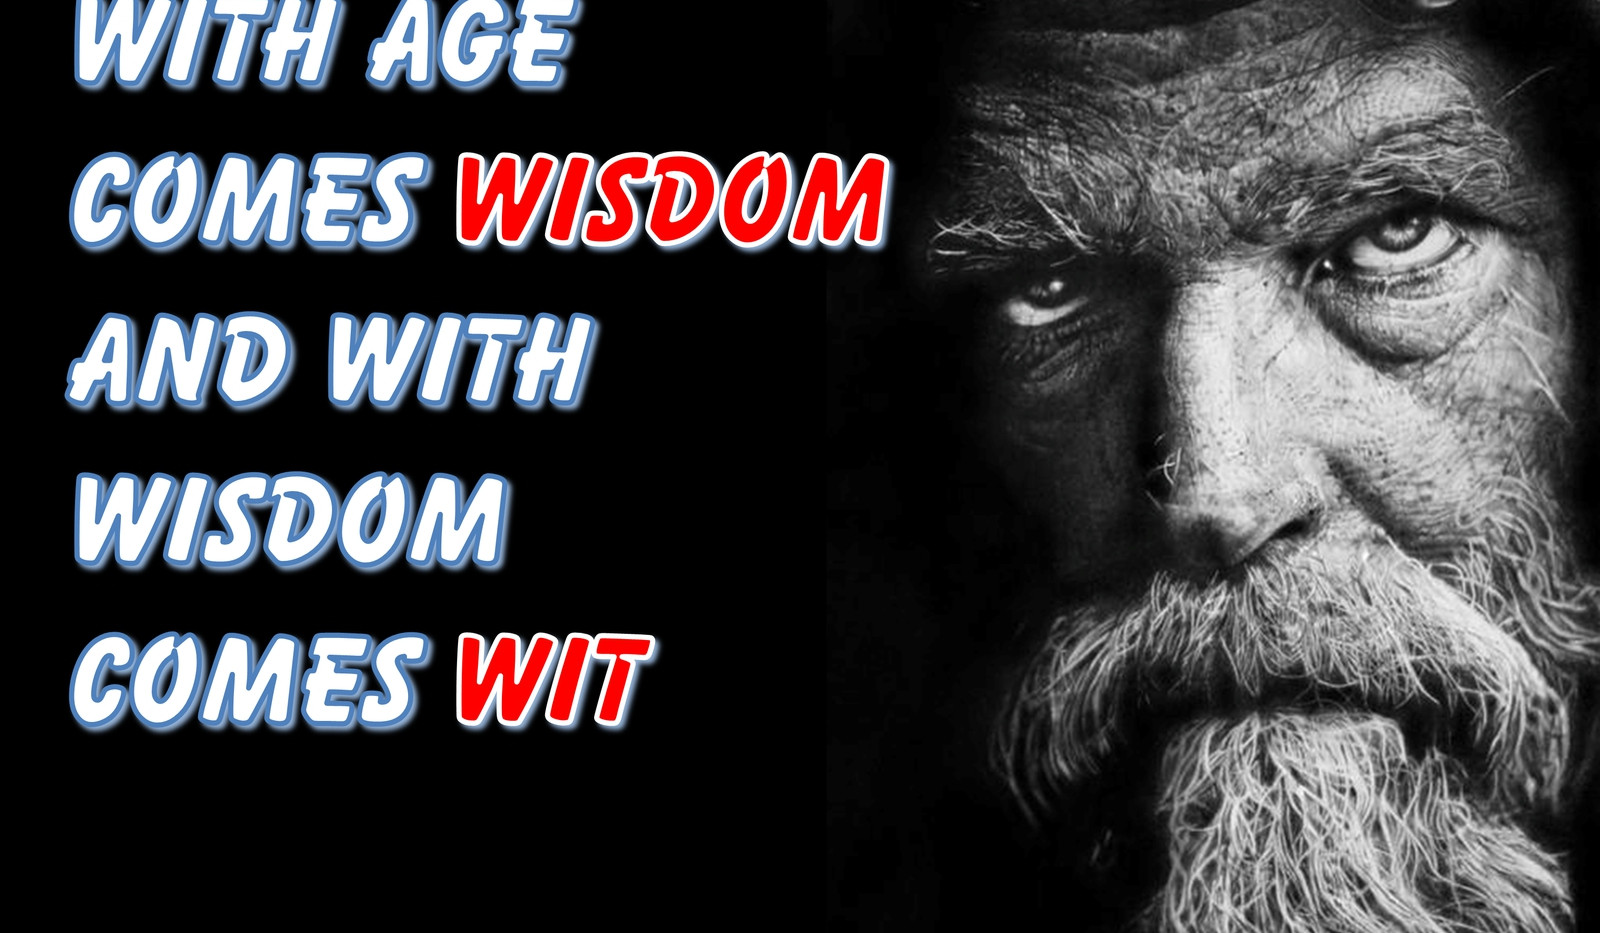 With Age Comes Wisdom and With Wisdom Comes Wit